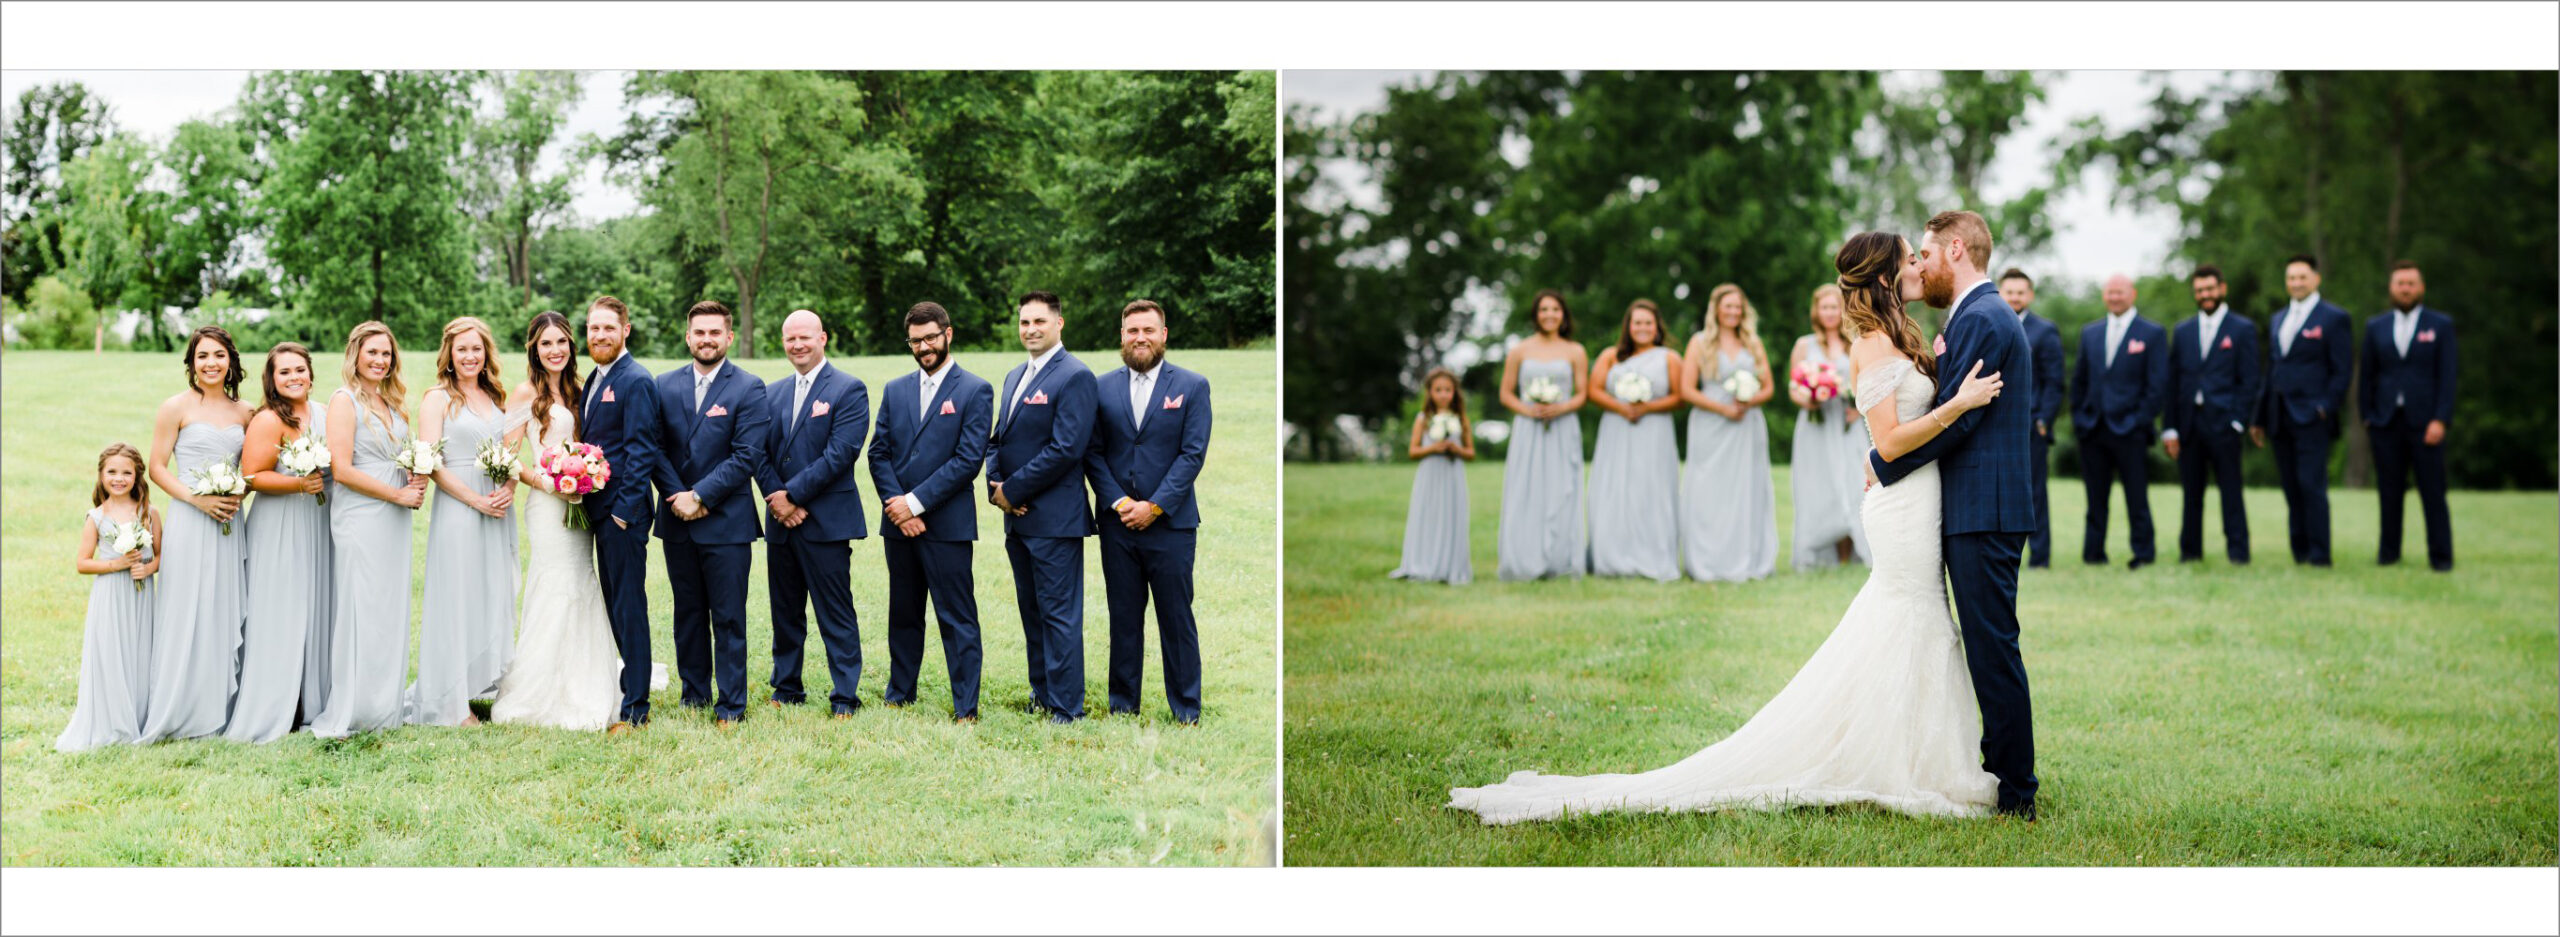 Full bridal party photos